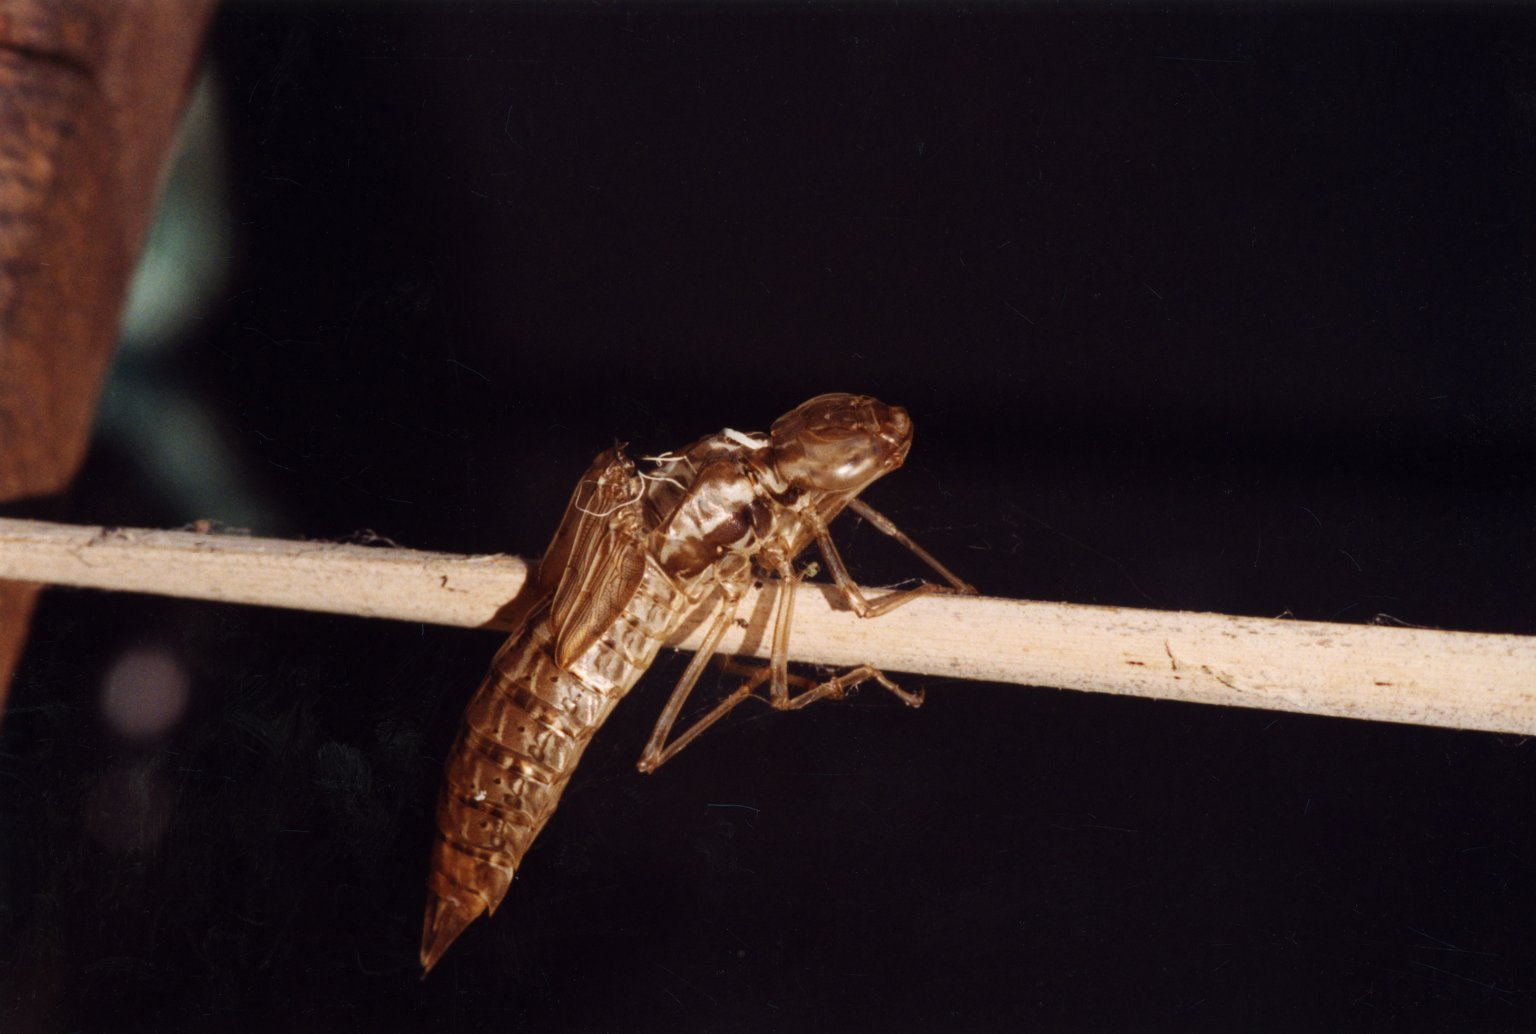 Close up of unidenitified insect on stalk